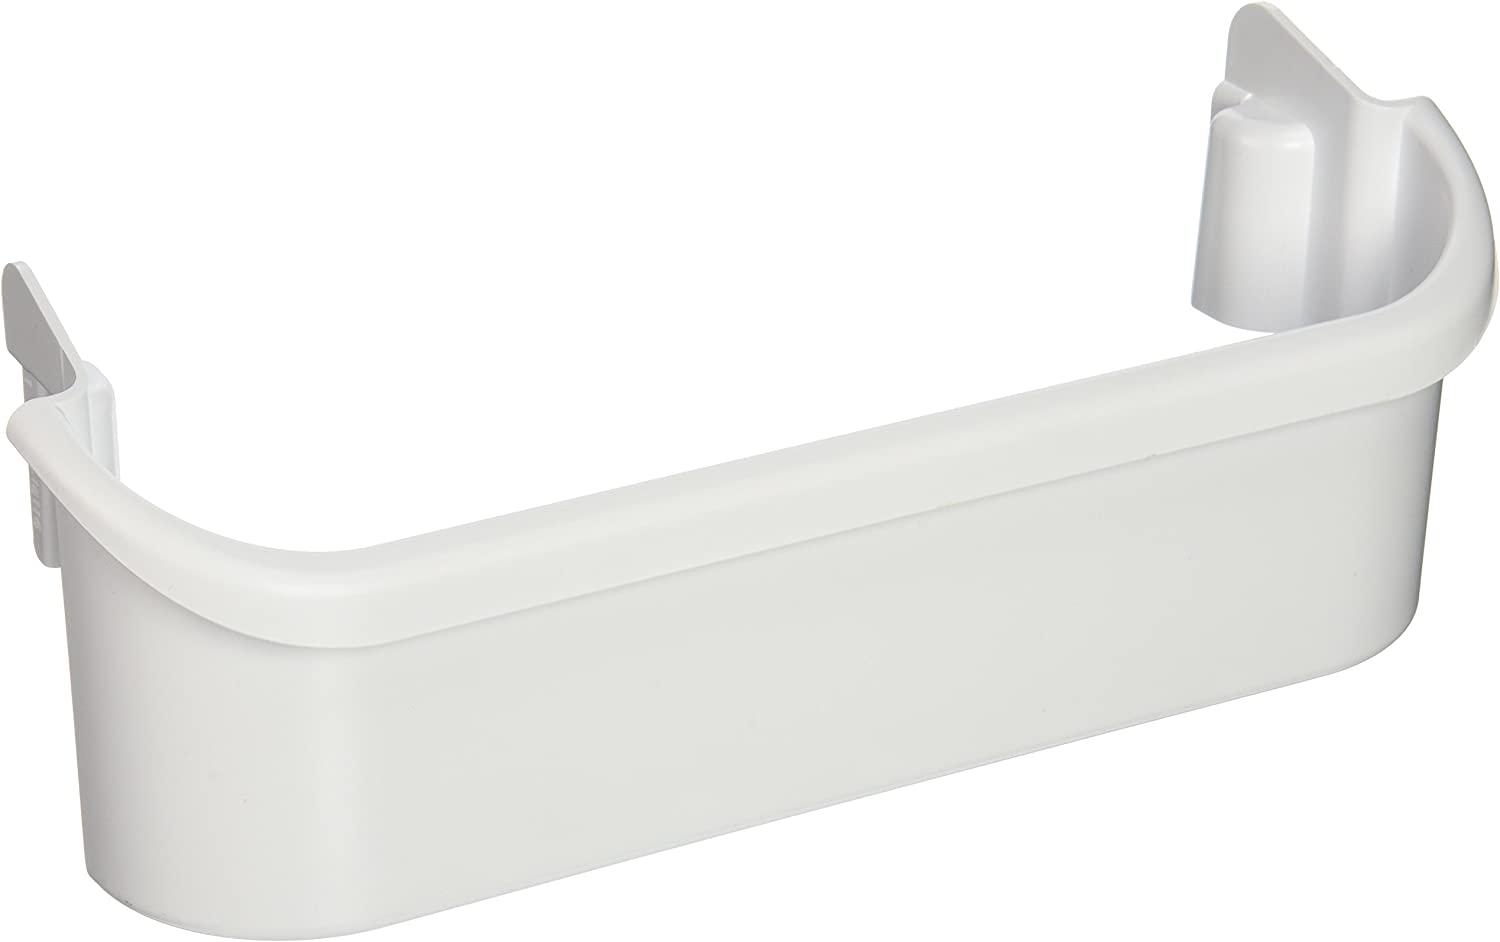 Frigidaire 241511601 Refrigerator Door Shelf Bin